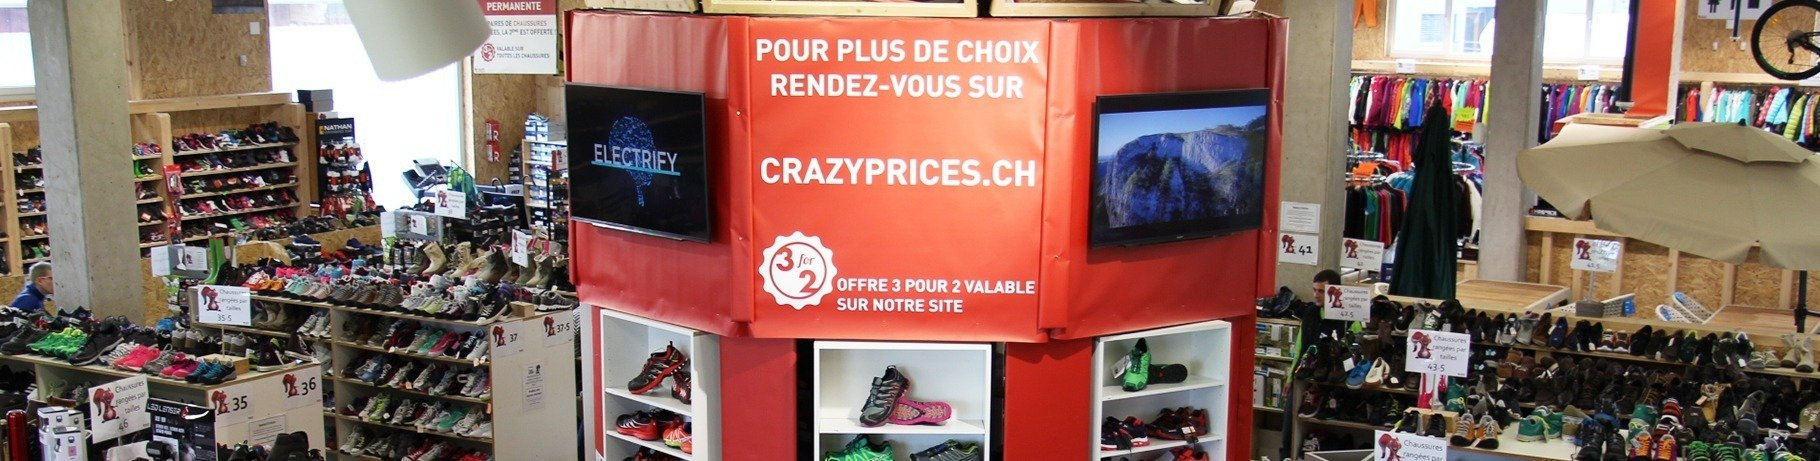 magasin crazyprices le bry suisse